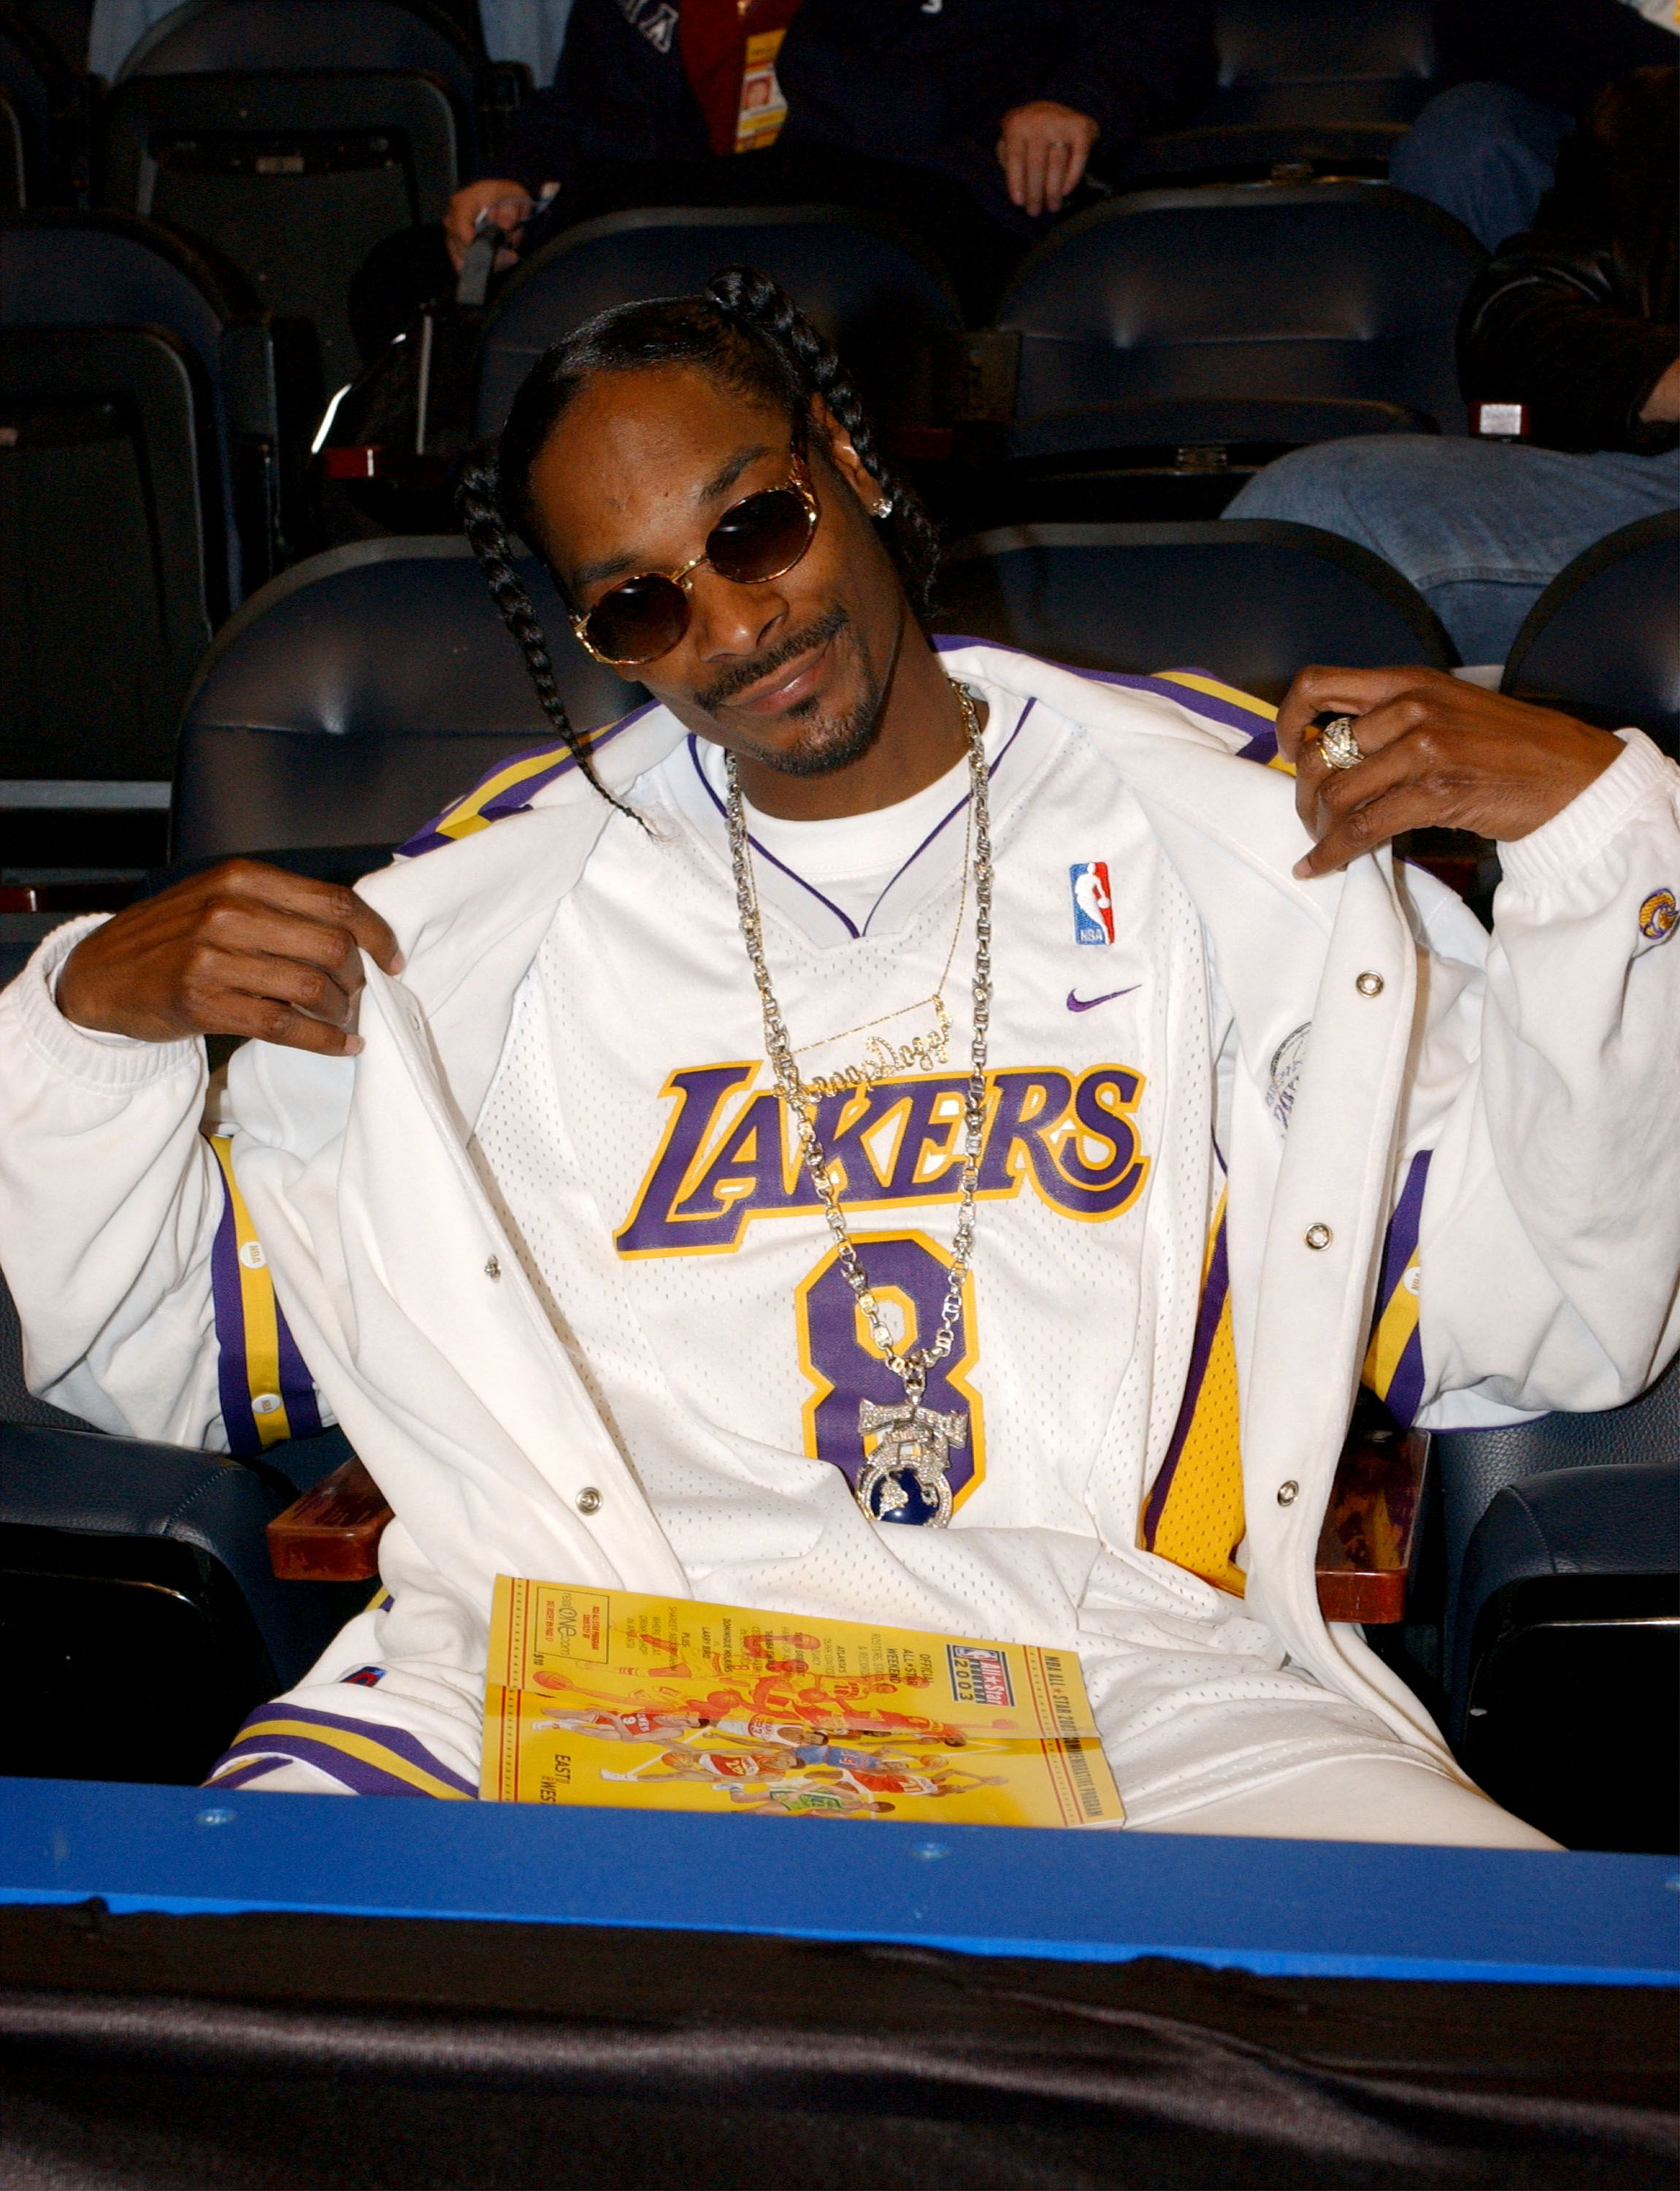 Snoop Dogg at the 2003 NBA All-Star game at the Phillips Arena February 9, 2003 in Atlanta, Georgia. | Source: Getty Images